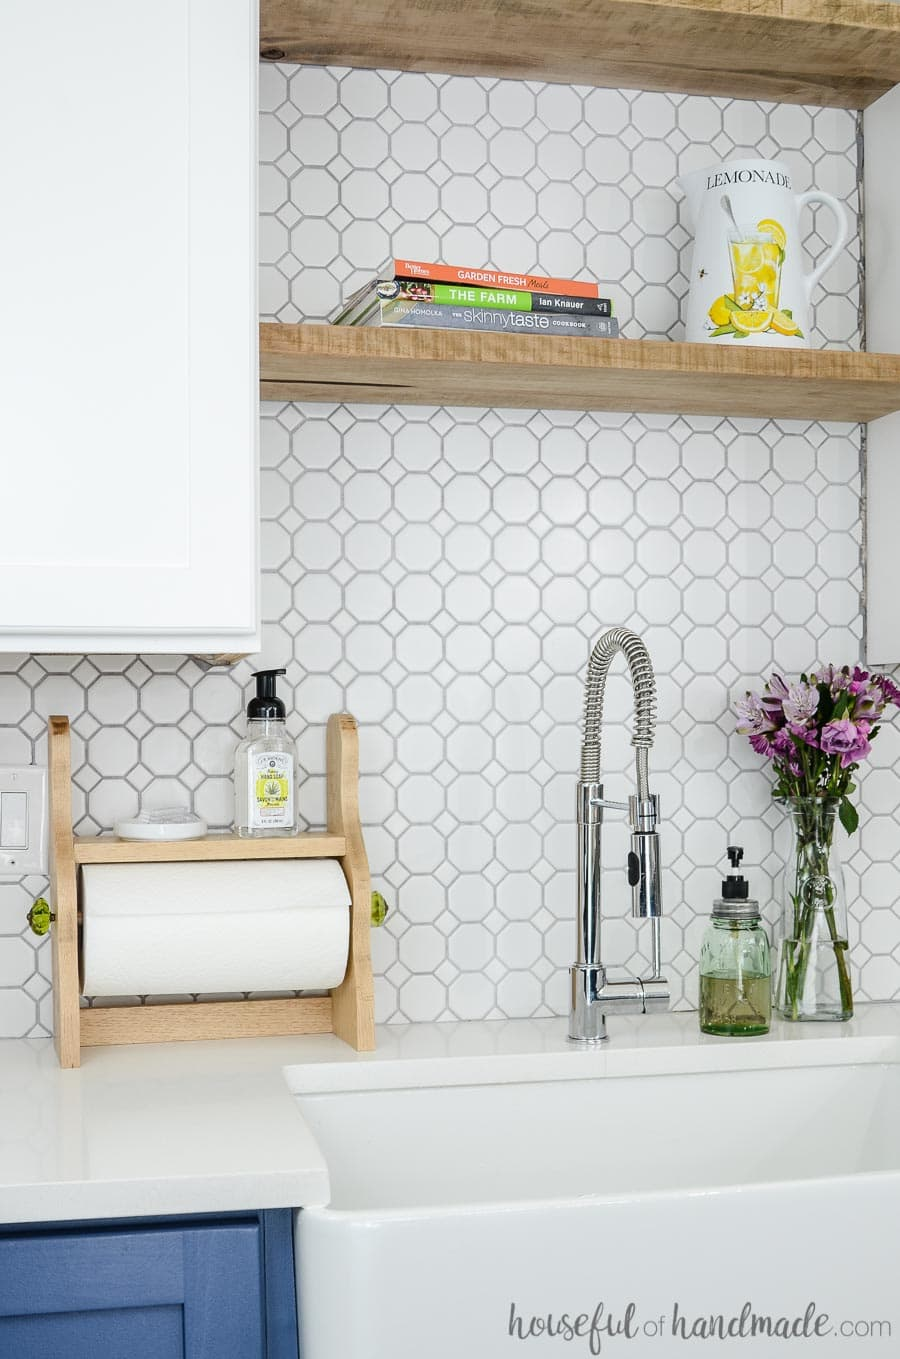 diy farmhouse paper towel holder shown in kitchen next to sink